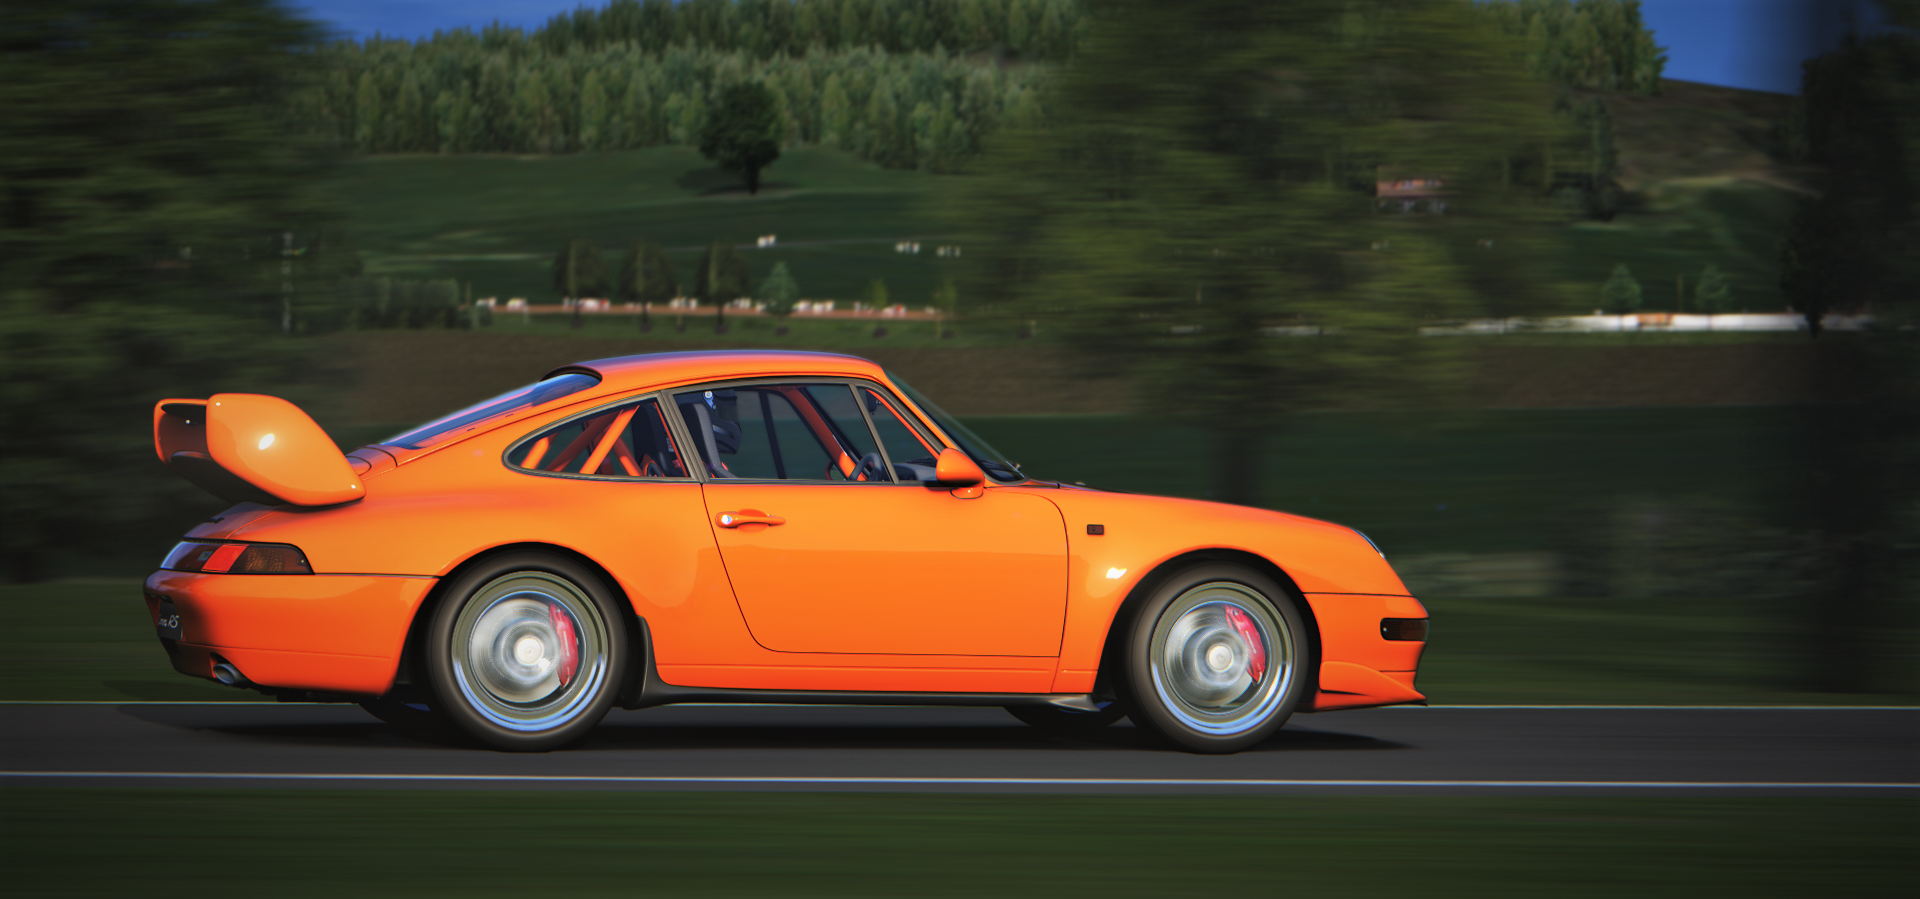 Screenshot_ddm_porsche_993_carrera_rs_borgloh_26-11-120-1-8-20.png